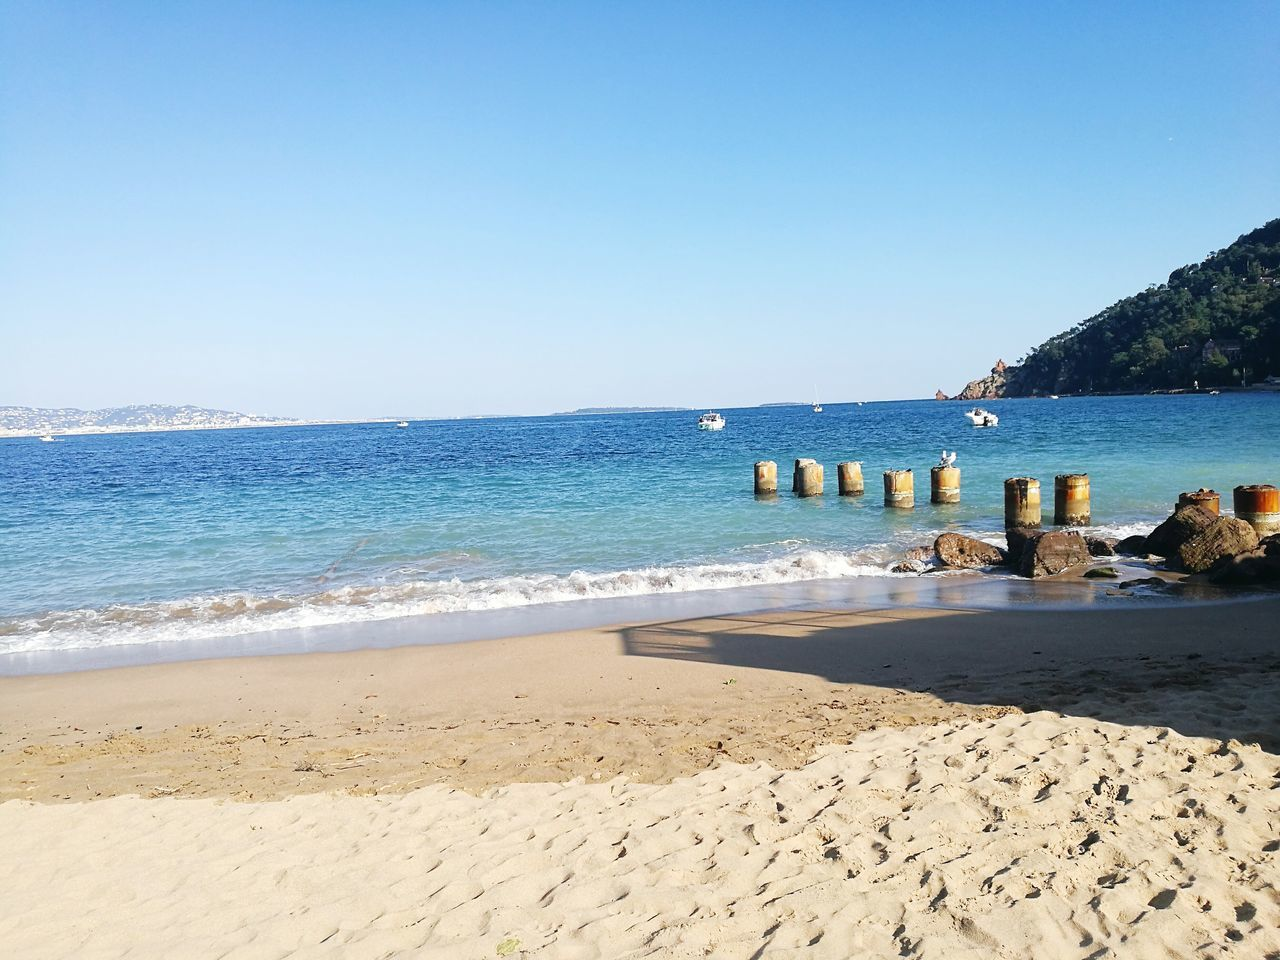 beach, sea, sand, water, shore, nature, clear sky, beauty in nature, scenics, tranquil scene, outdoors, blue, tranquility, horizon over water, day, no people, summer, sunlight, vacations, wave, sky